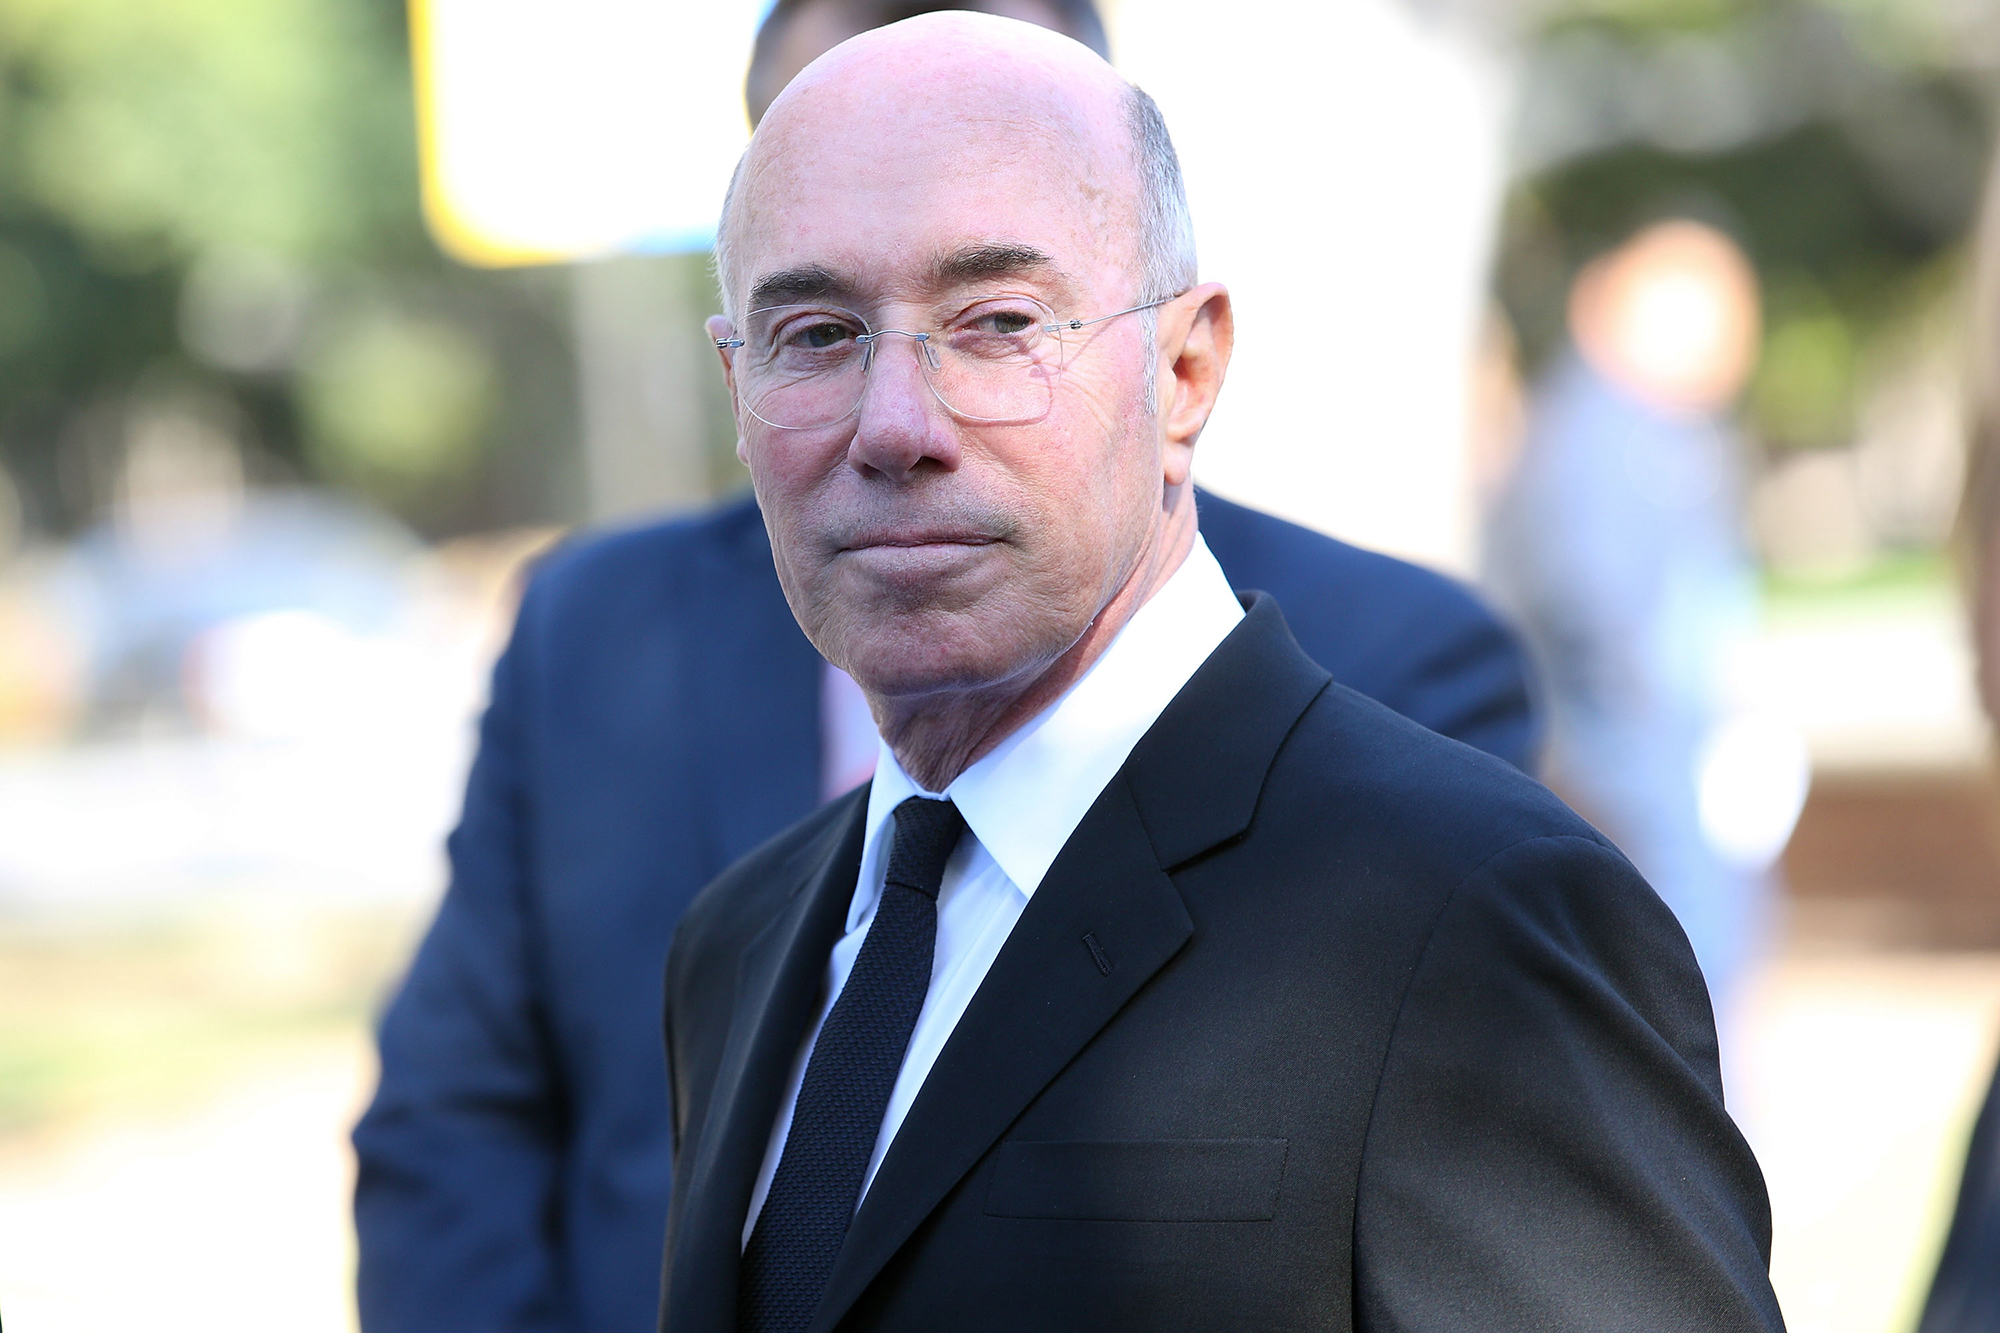 Tuition is free at the Yale Drama School after $150 million gift from David Geffen